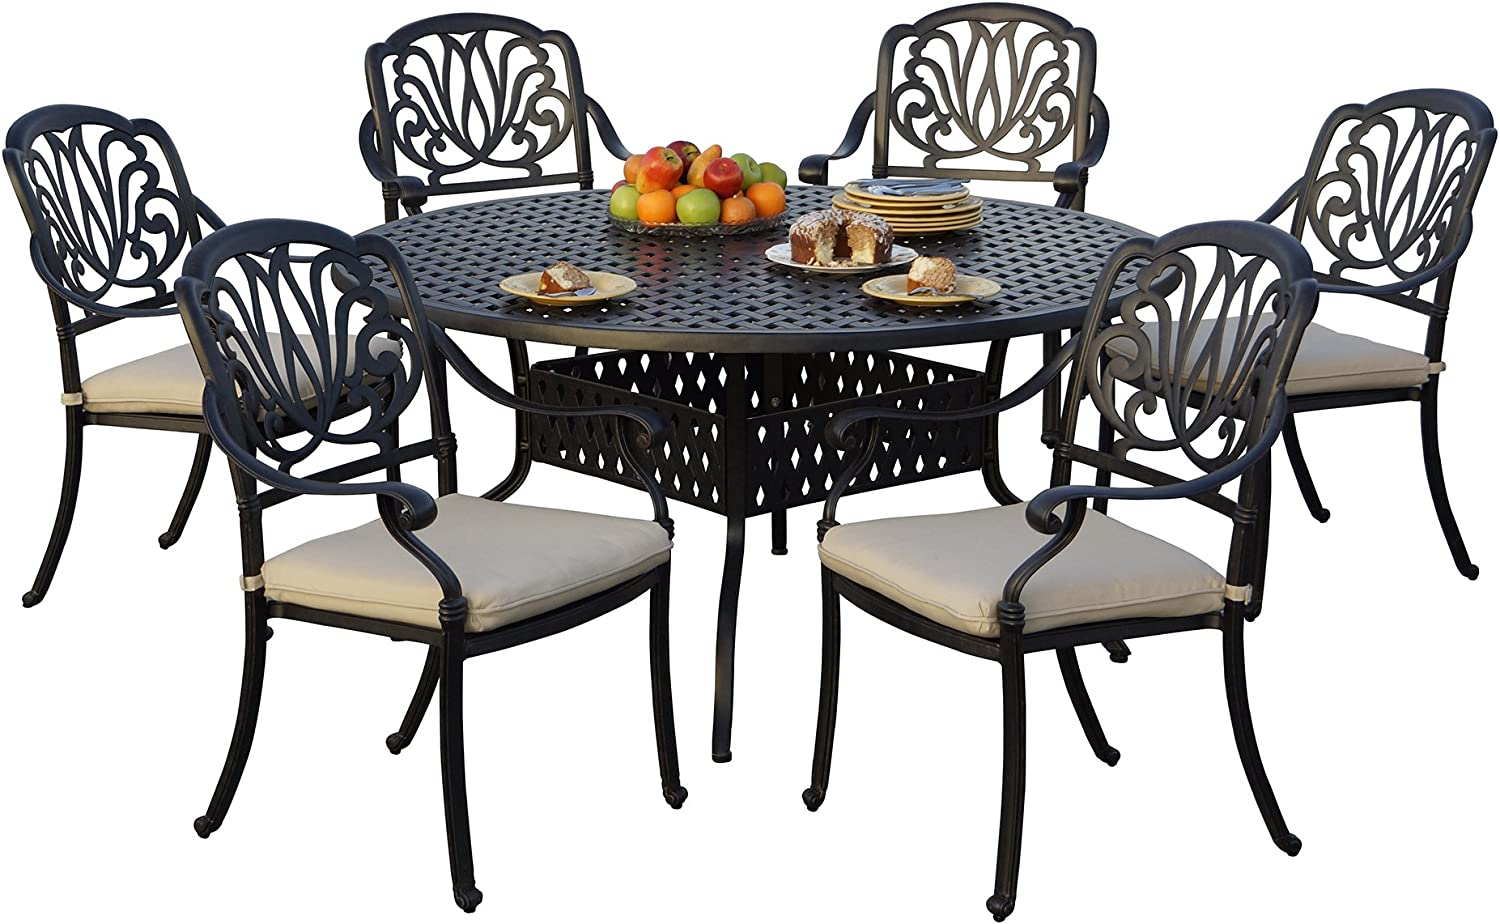 """AC HOME & PATIO Cast Aluminum 7 Piece Outdoor Dining Set with 59'' Round Table, 60"""", Desert Bronze Finish 811-1y3ODoLSL1500_"""